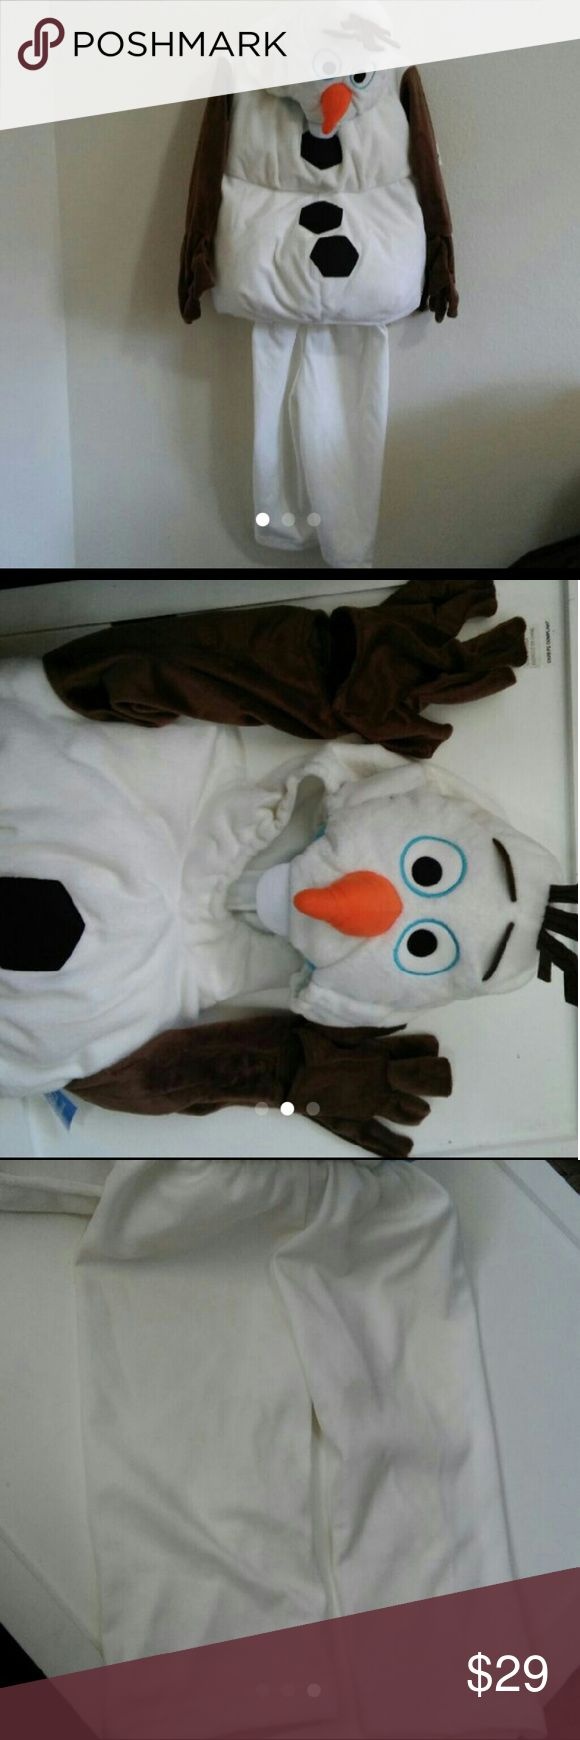 Disney Store Olaf Costume In excellent condition. Disney store olaf costume. Comes with pants. Size 2 Disney store Costumes Halloween